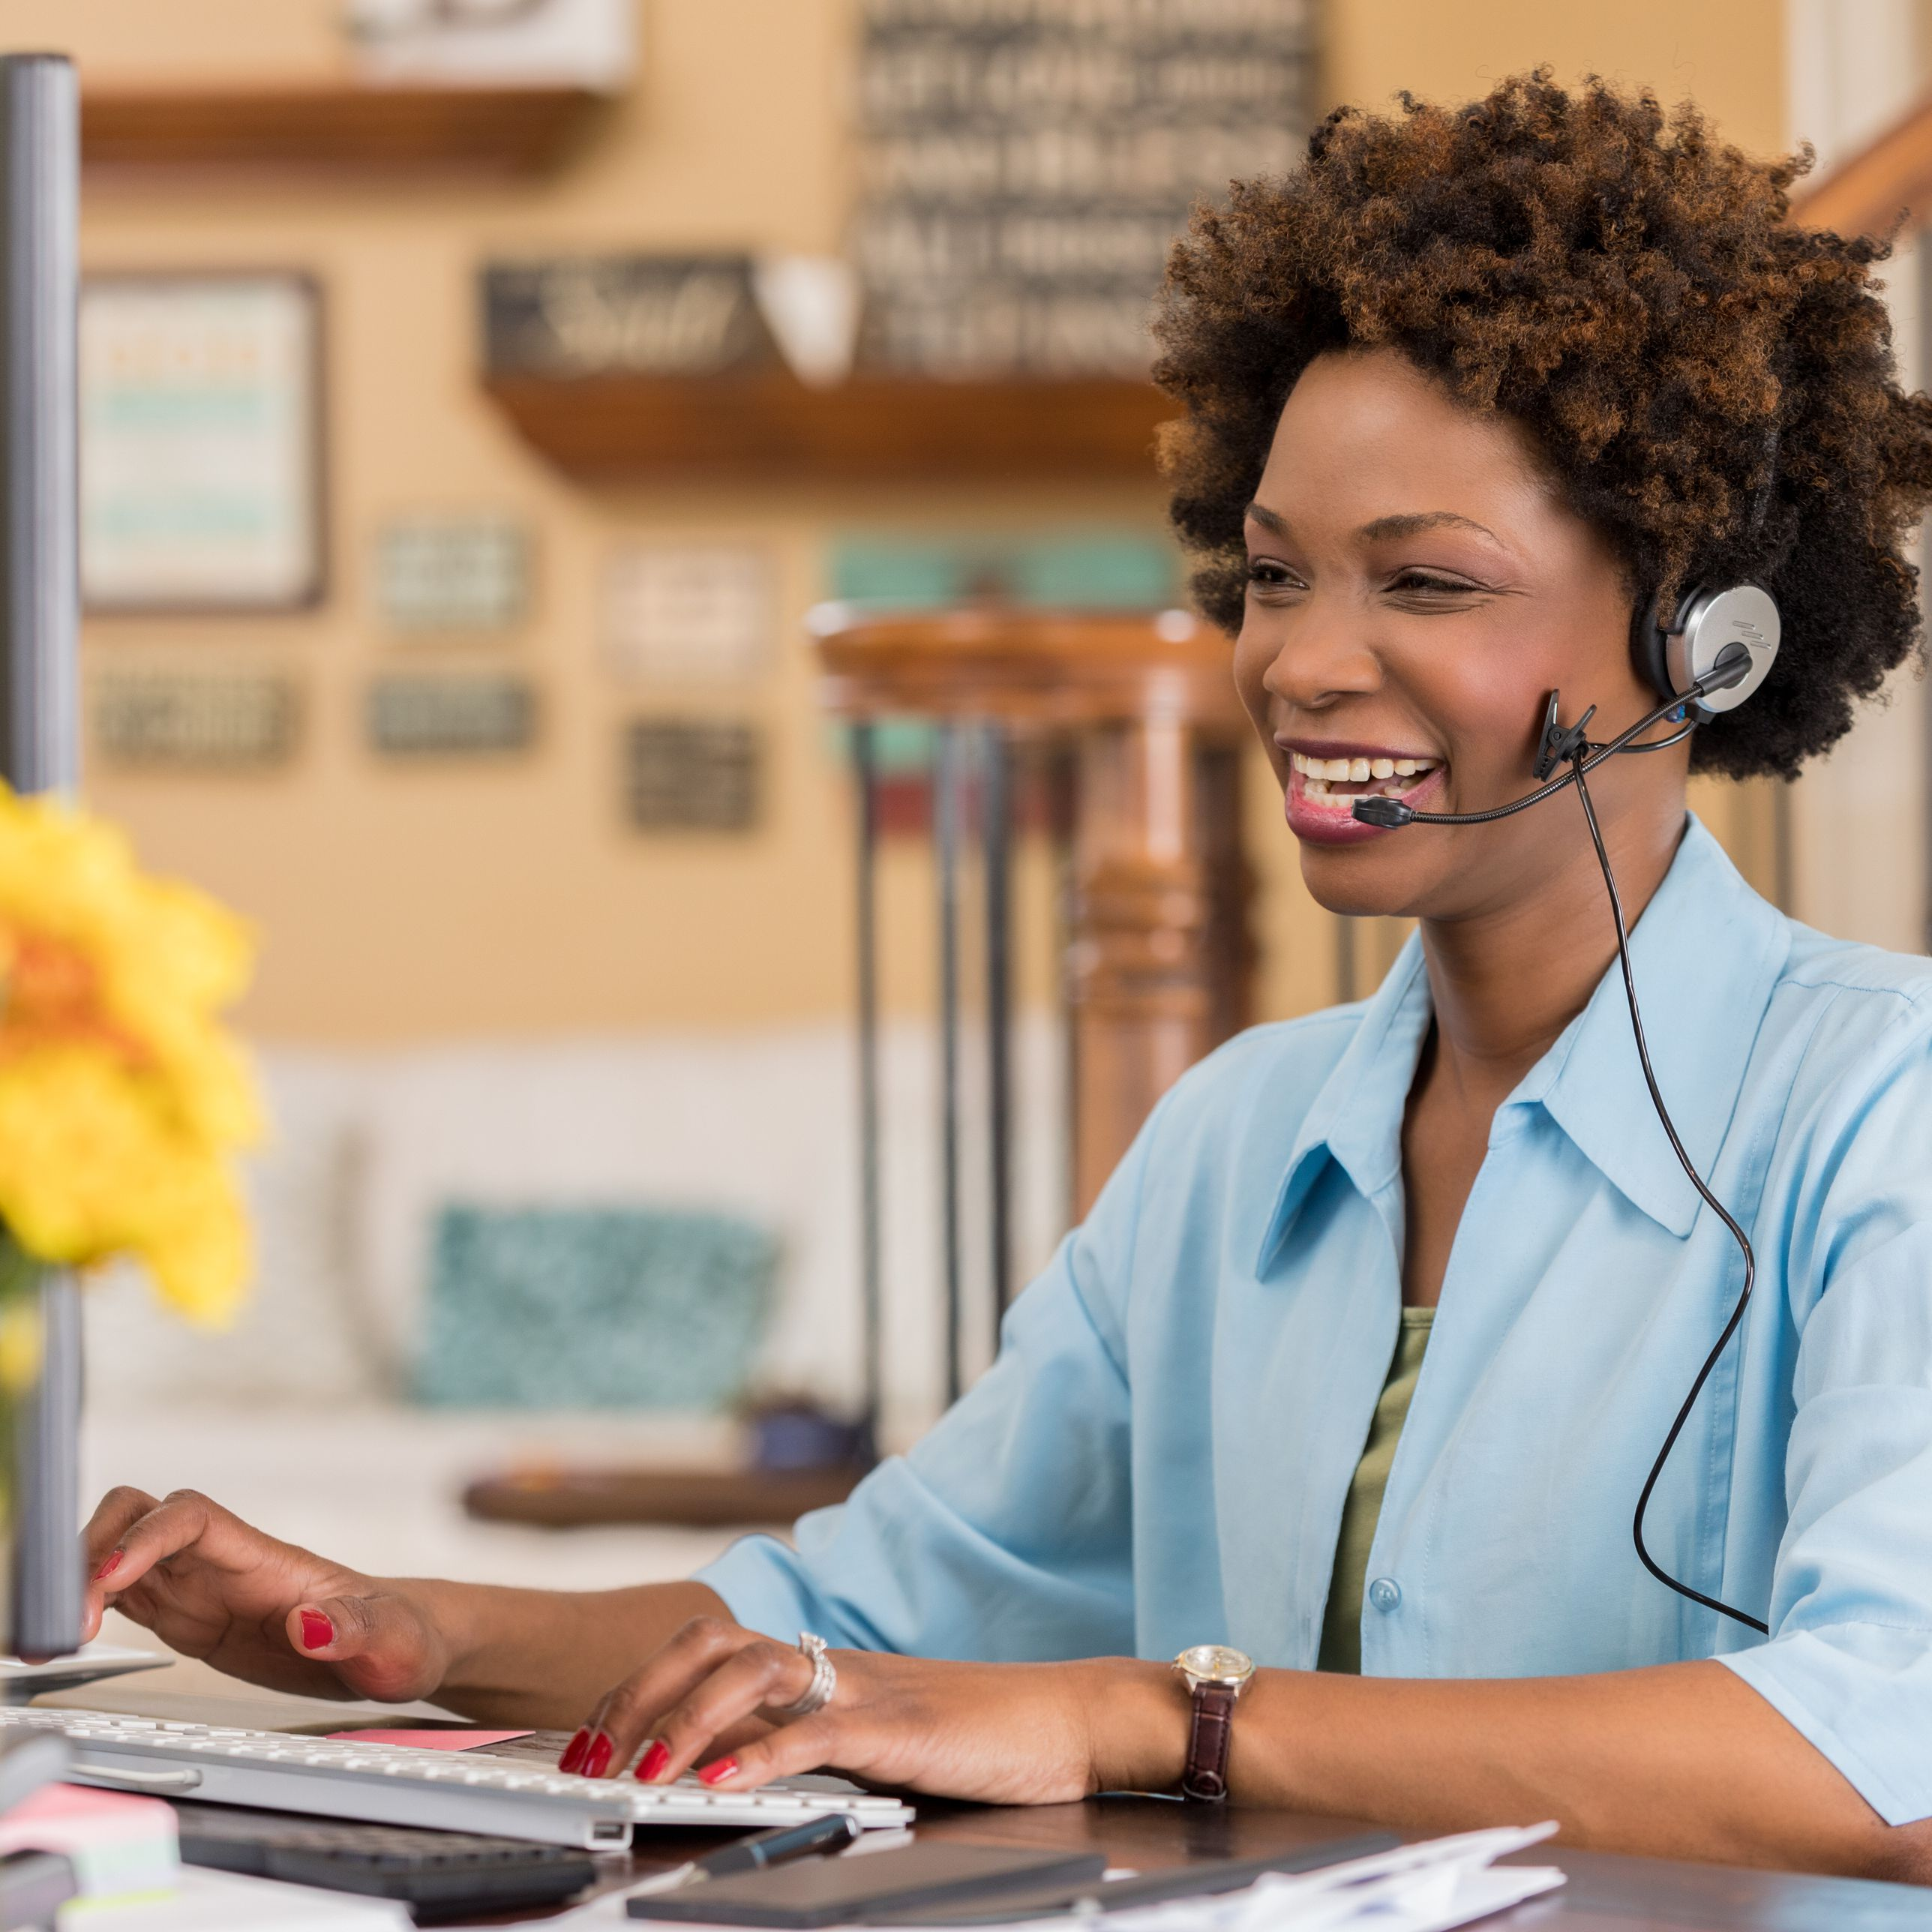 5 Customer Service Jobs You Can Do From Home